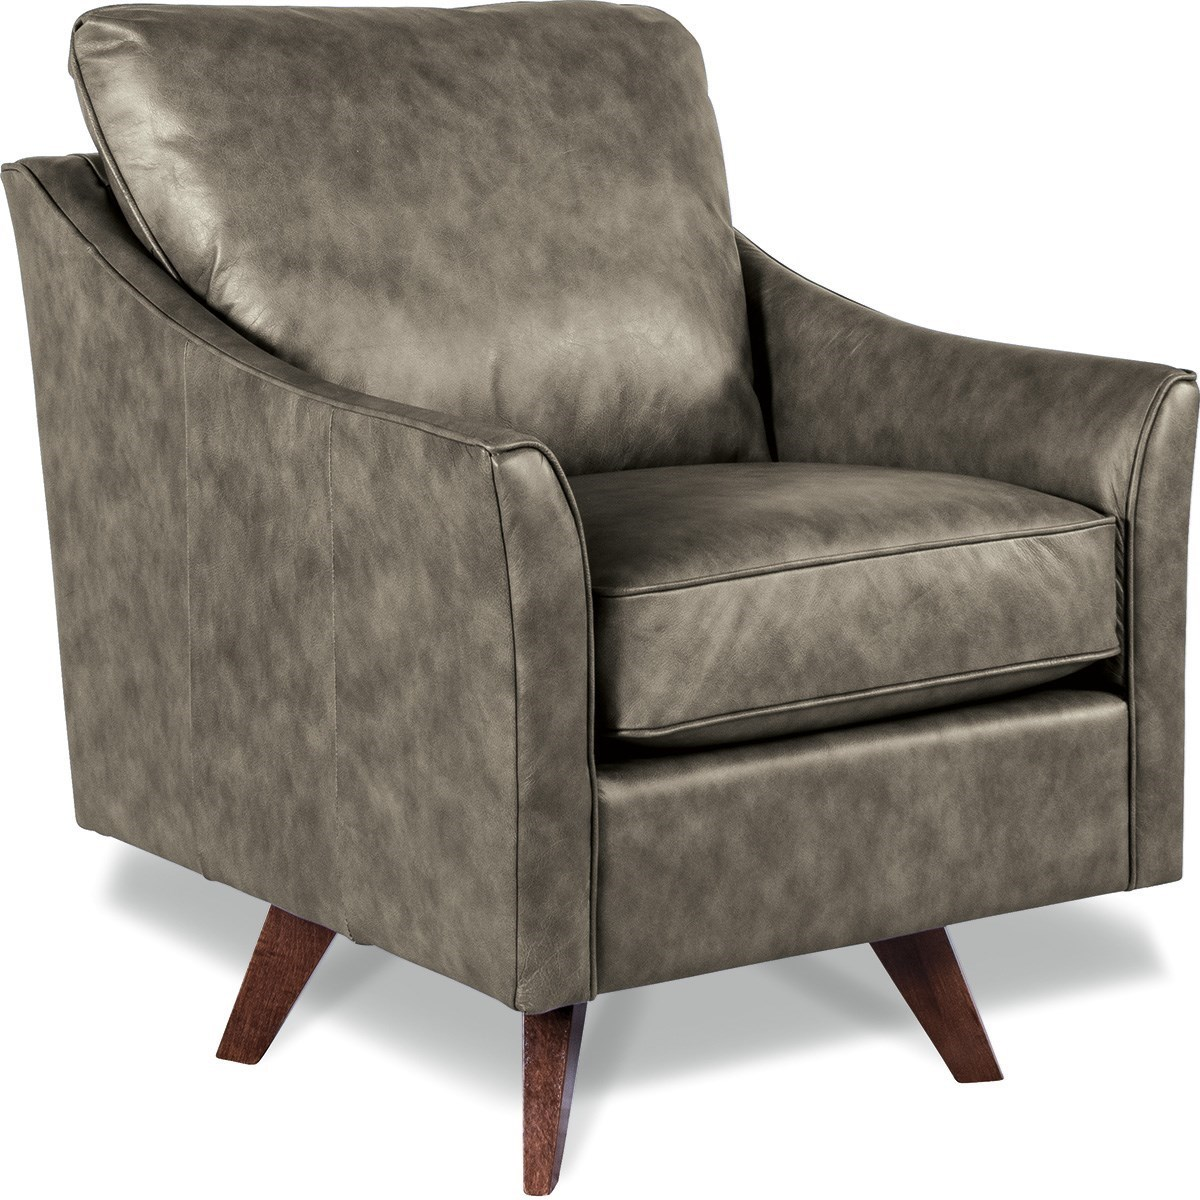 Reegan Swivel Occasional Chair